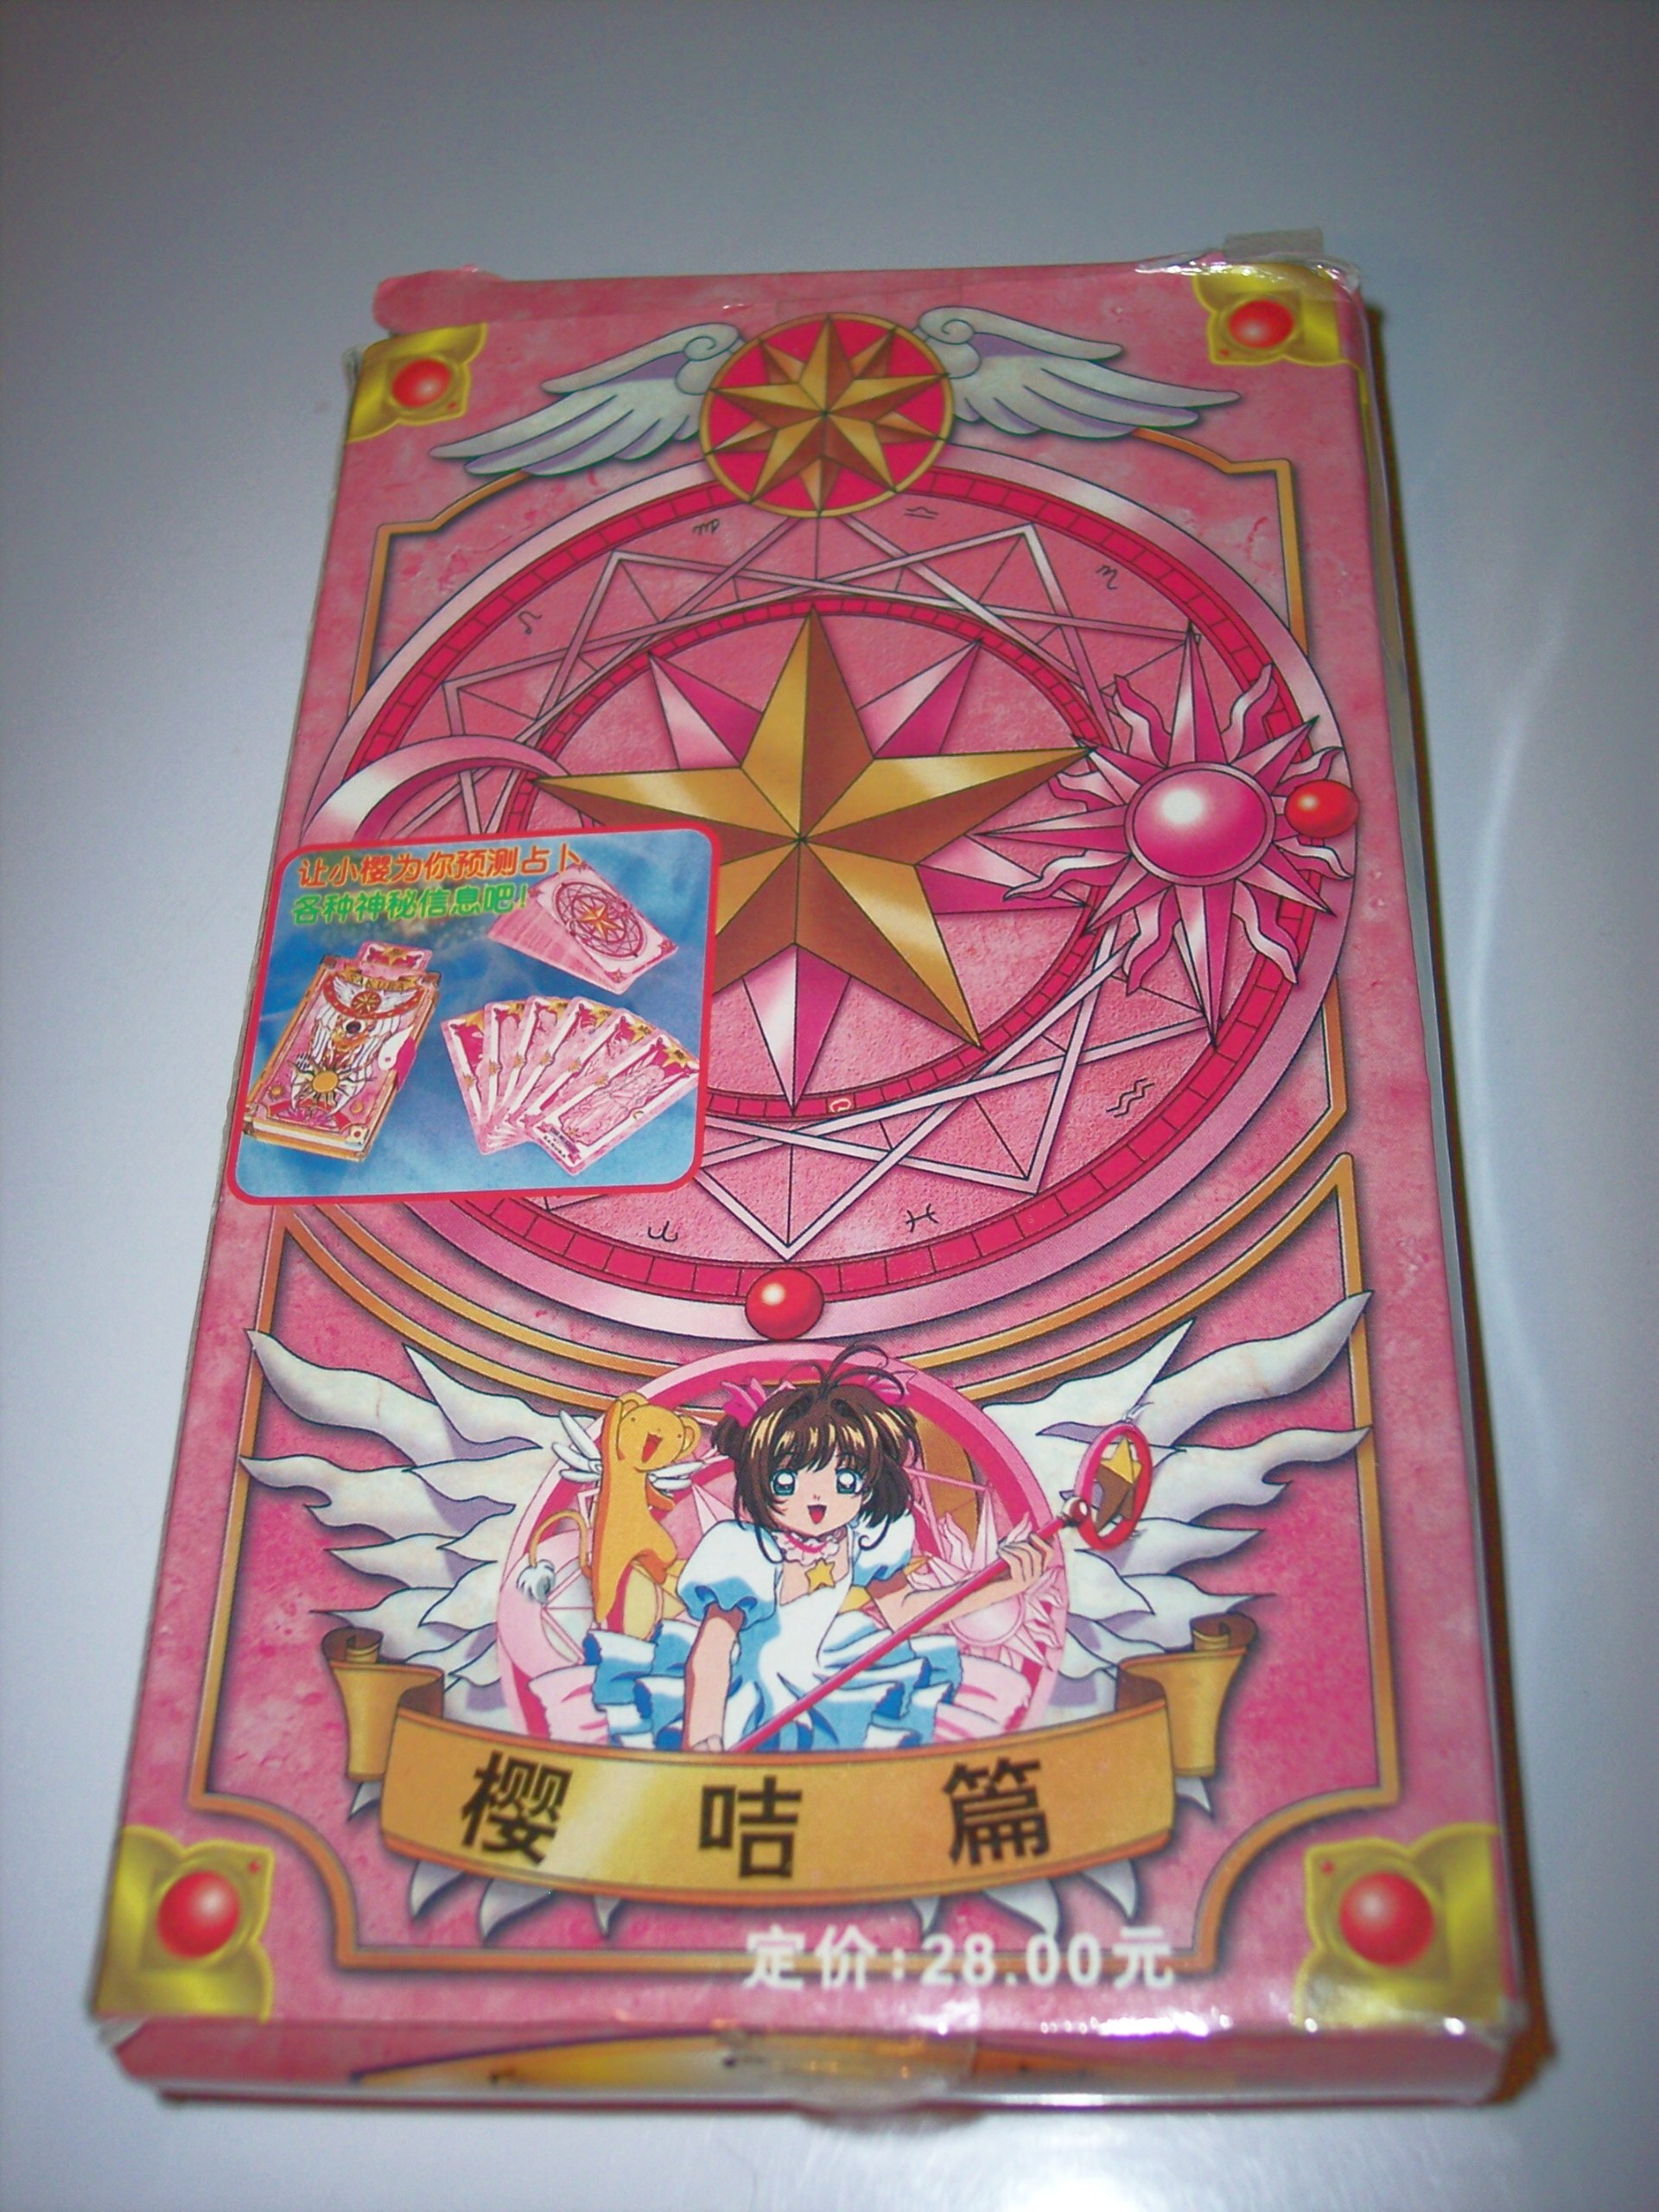 Amazon.com: Card Captor Sakura Tarot Cards: unknown: Books